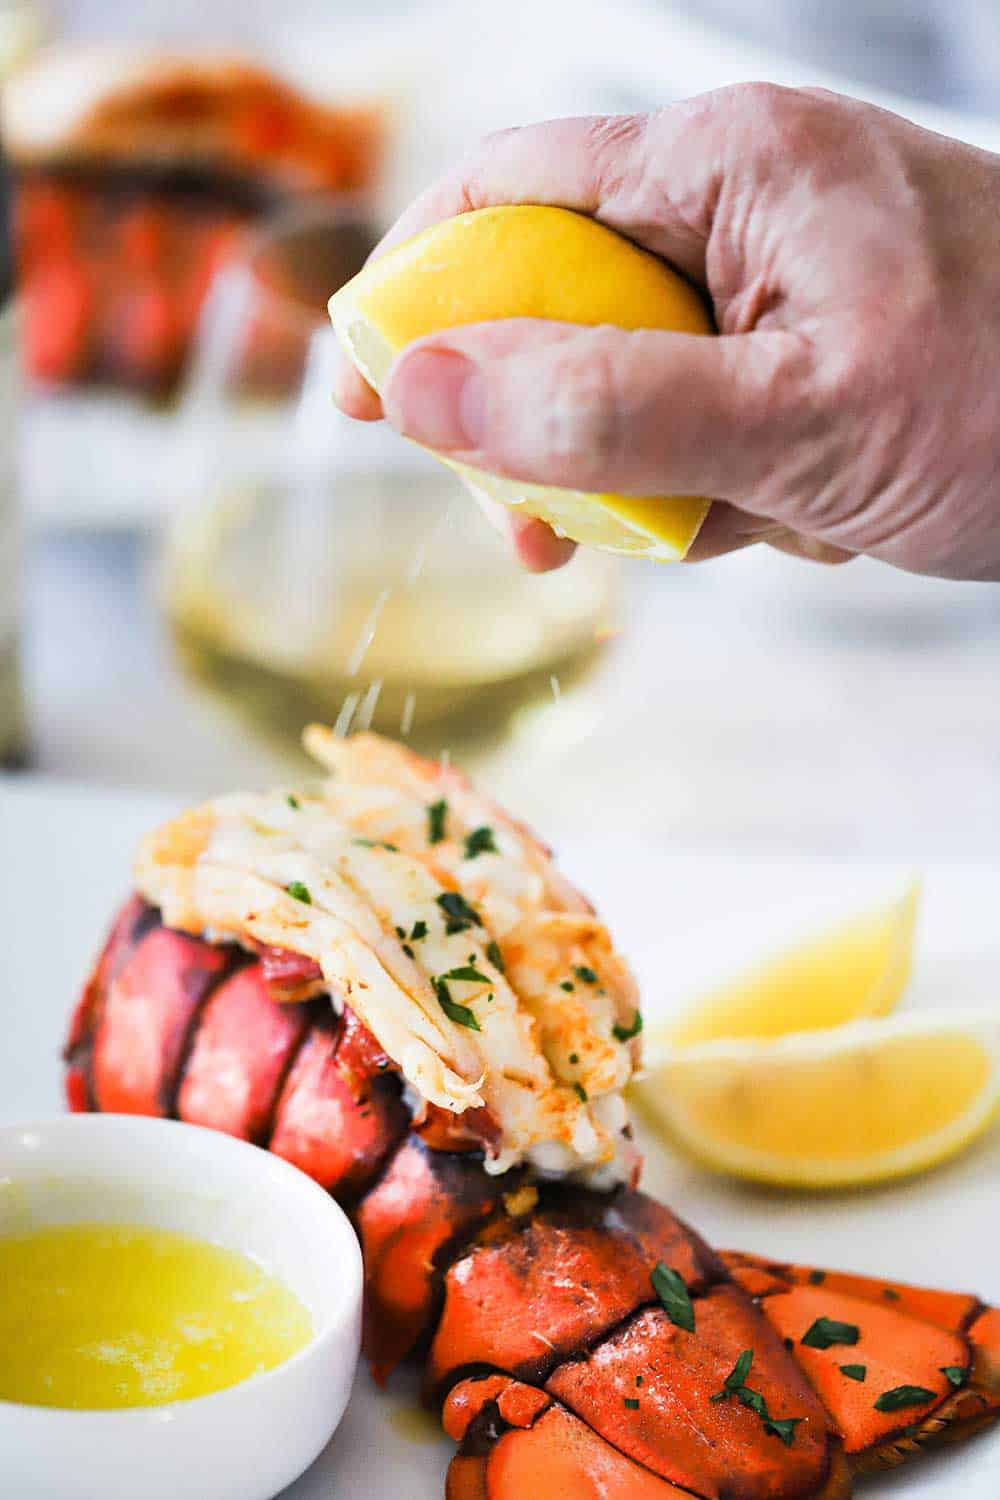 A person squeezing a half of a fresh lemon over a cooked lobster tail sitting next to a small bowl of drawn butter.